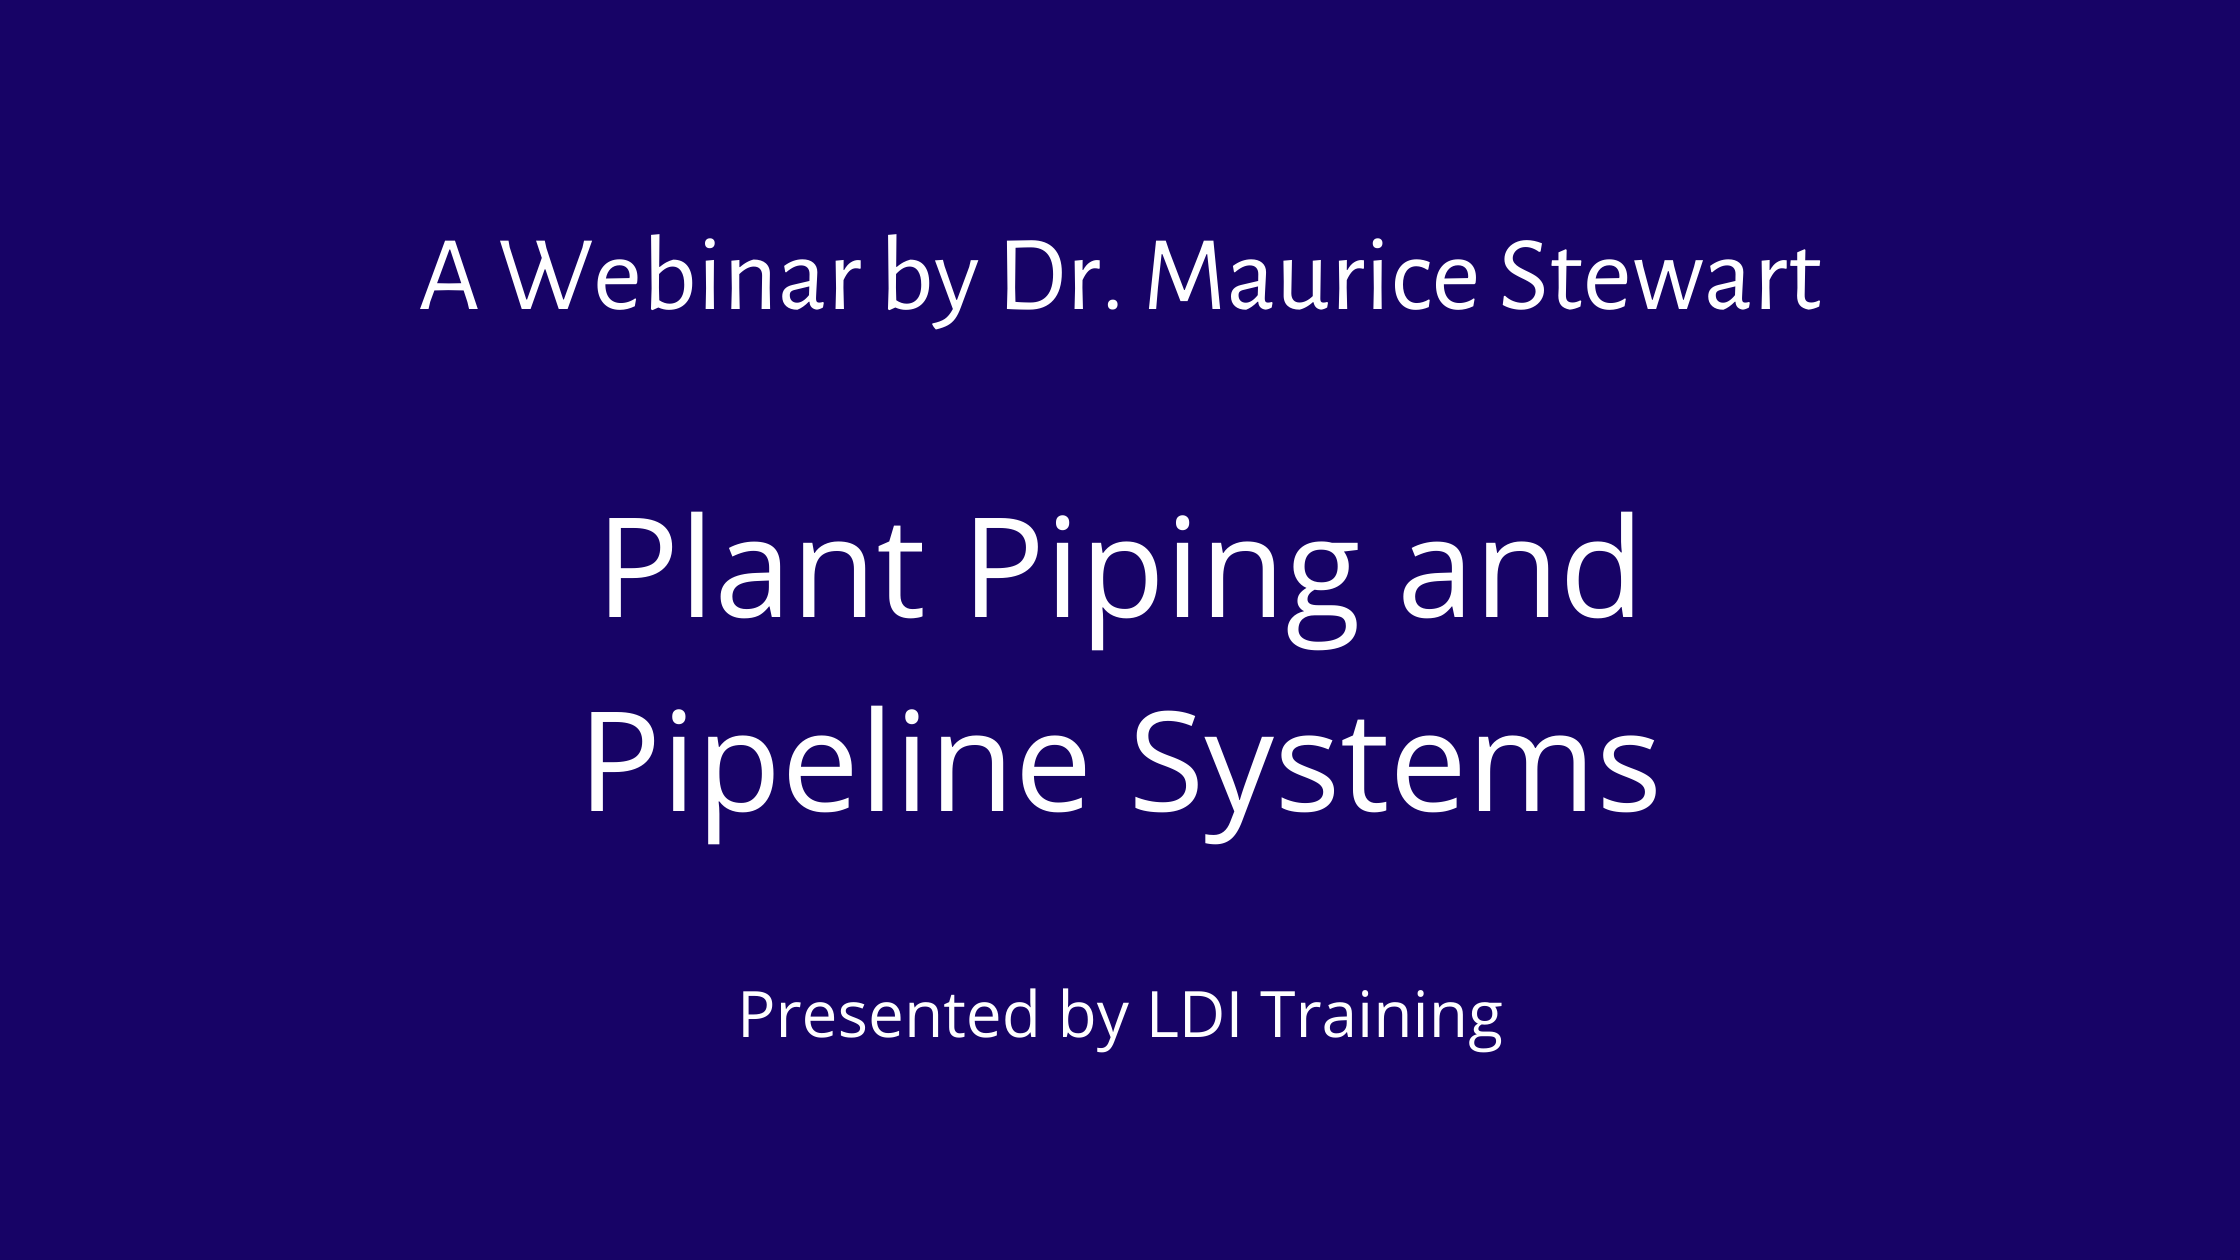 A Webinar by Dr. Maurice Stewart - Plant Piping and Pipeline Systems